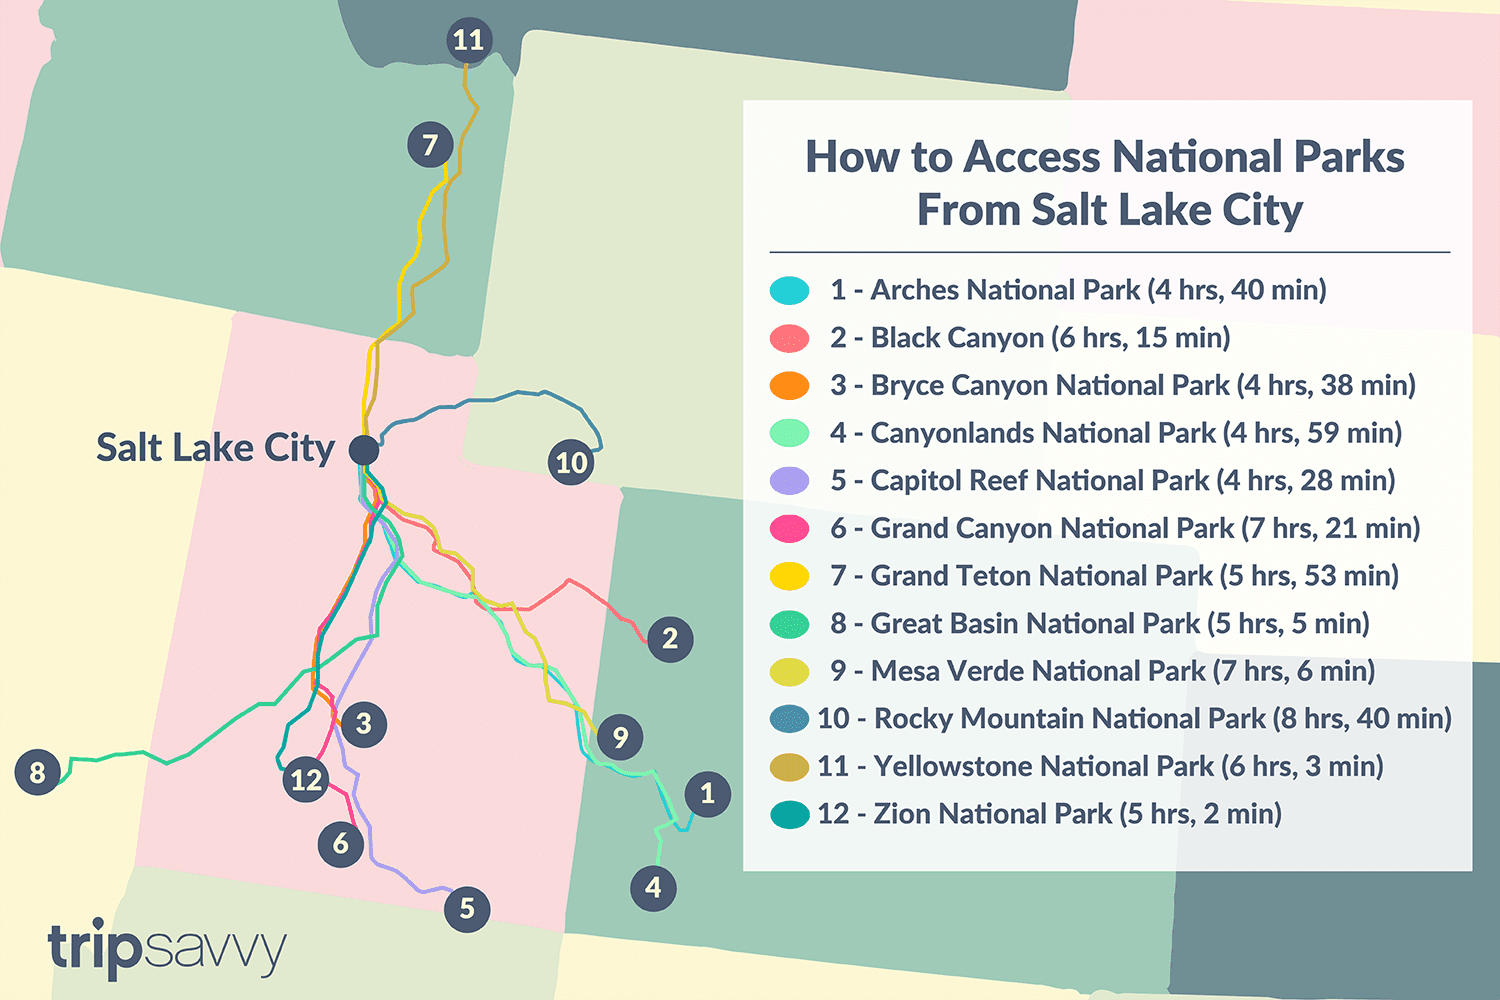 Driving Distance From Salt Lake City to National Parks